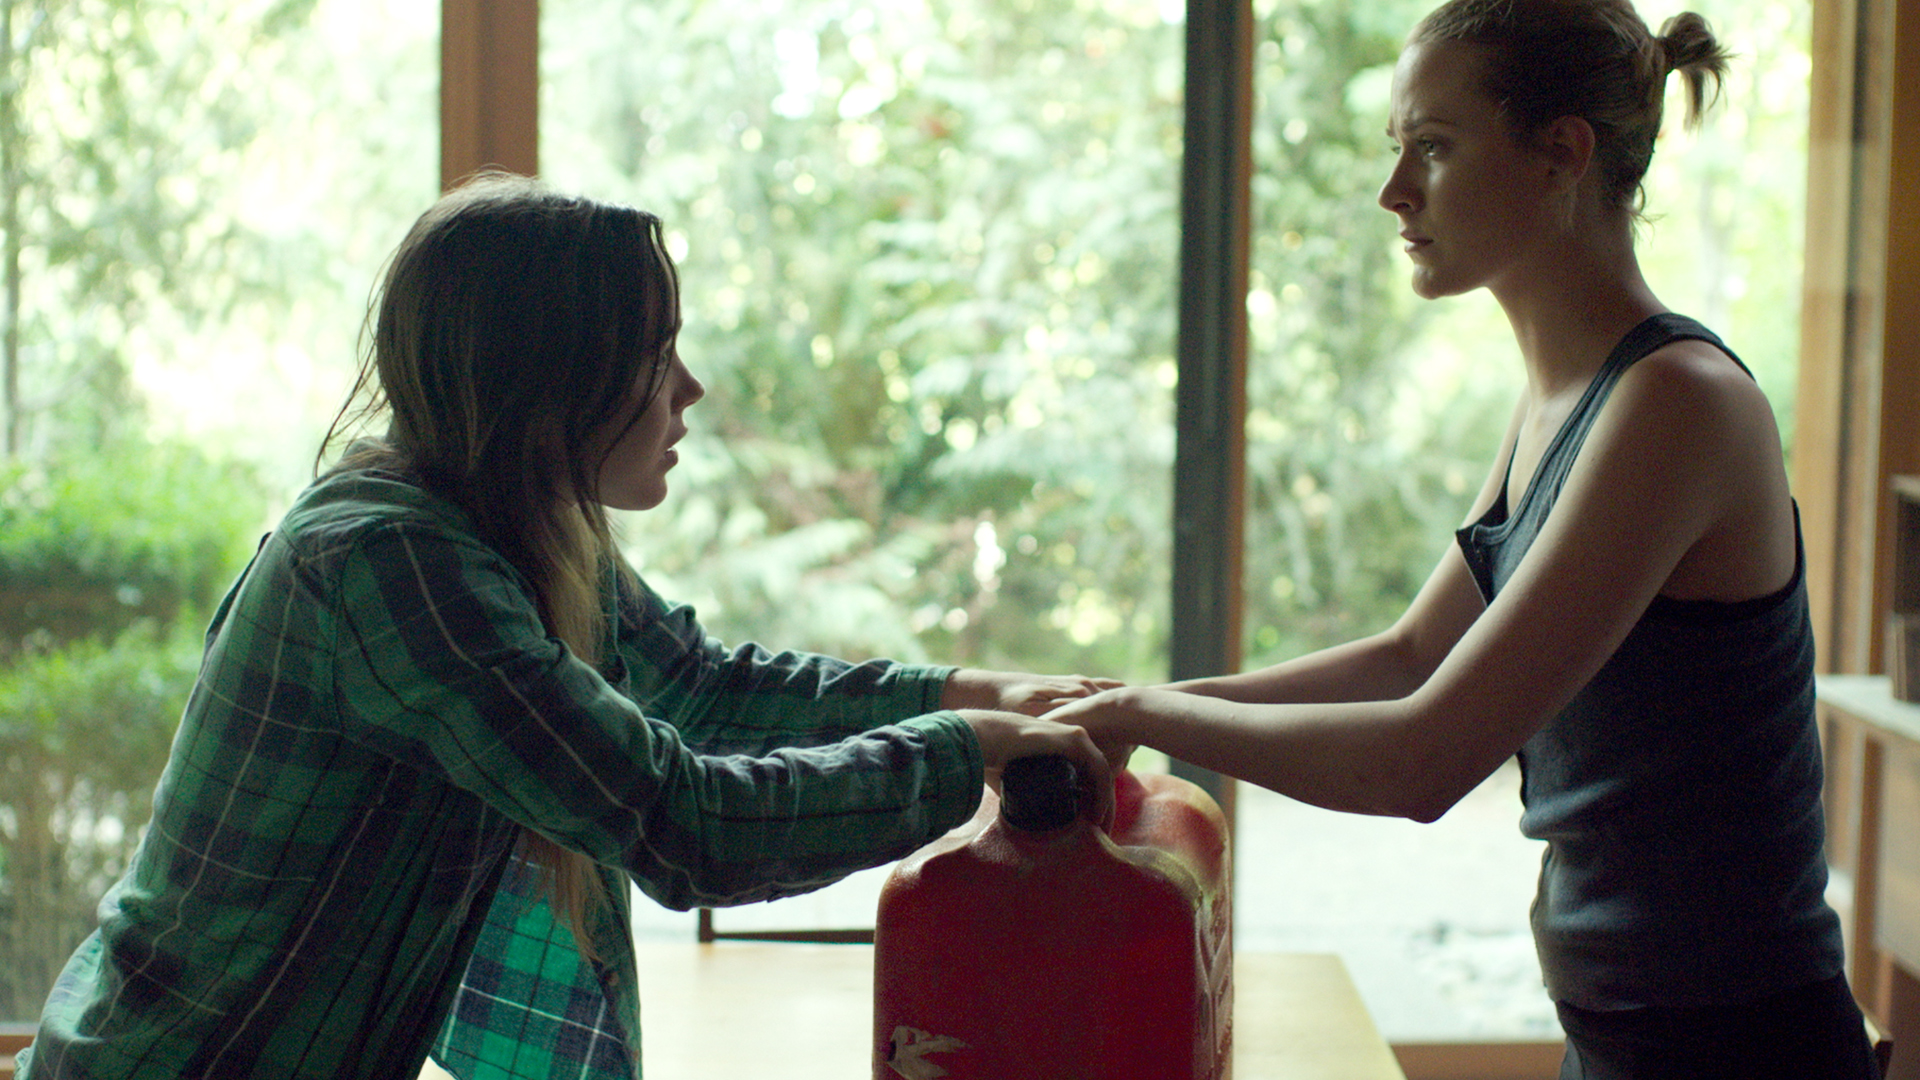 Into the Forest is a Movingly Realistic Post Apocalyptic Force - Taylor